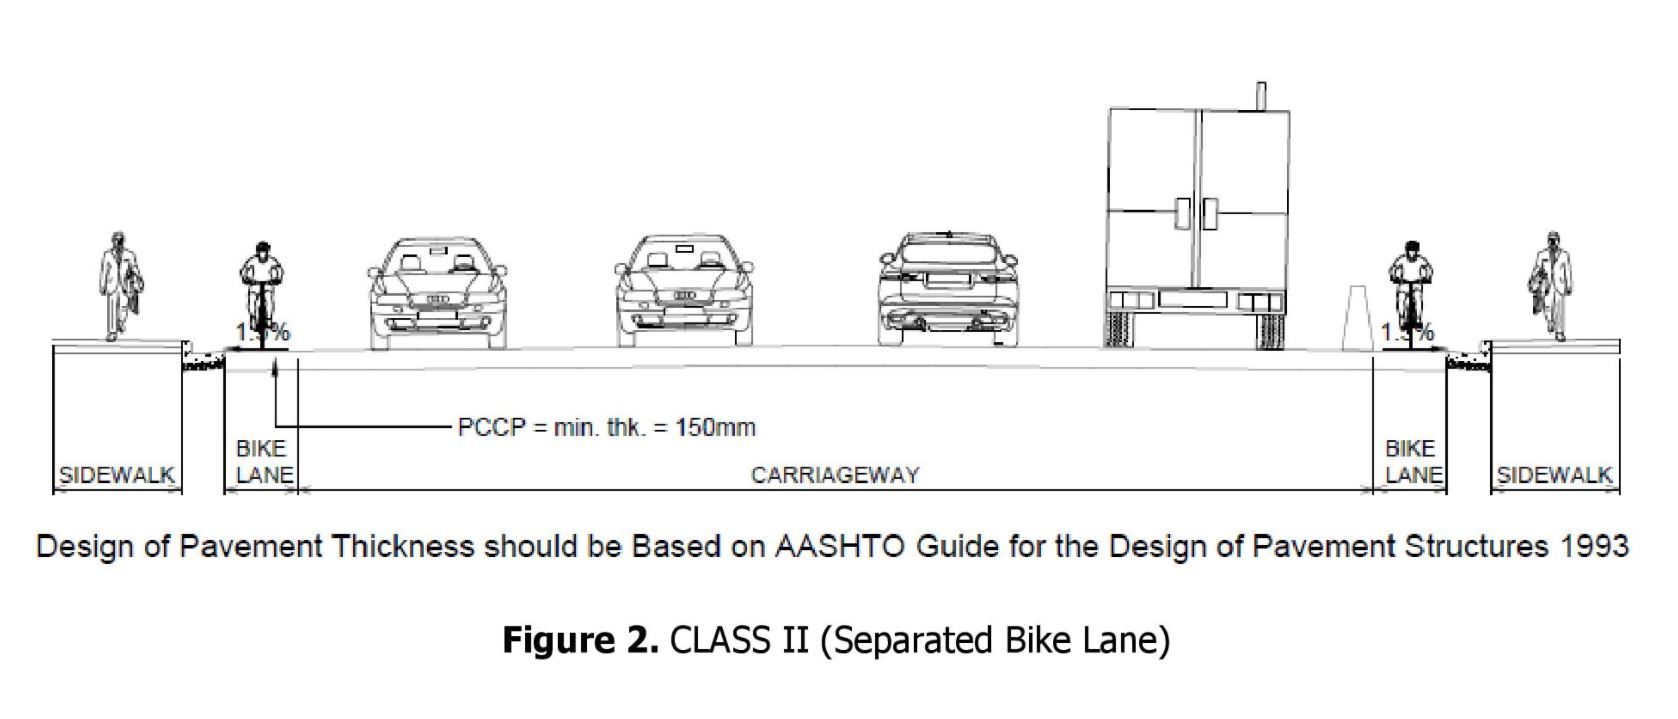 Bike lane design perspective. Image from DPWH.